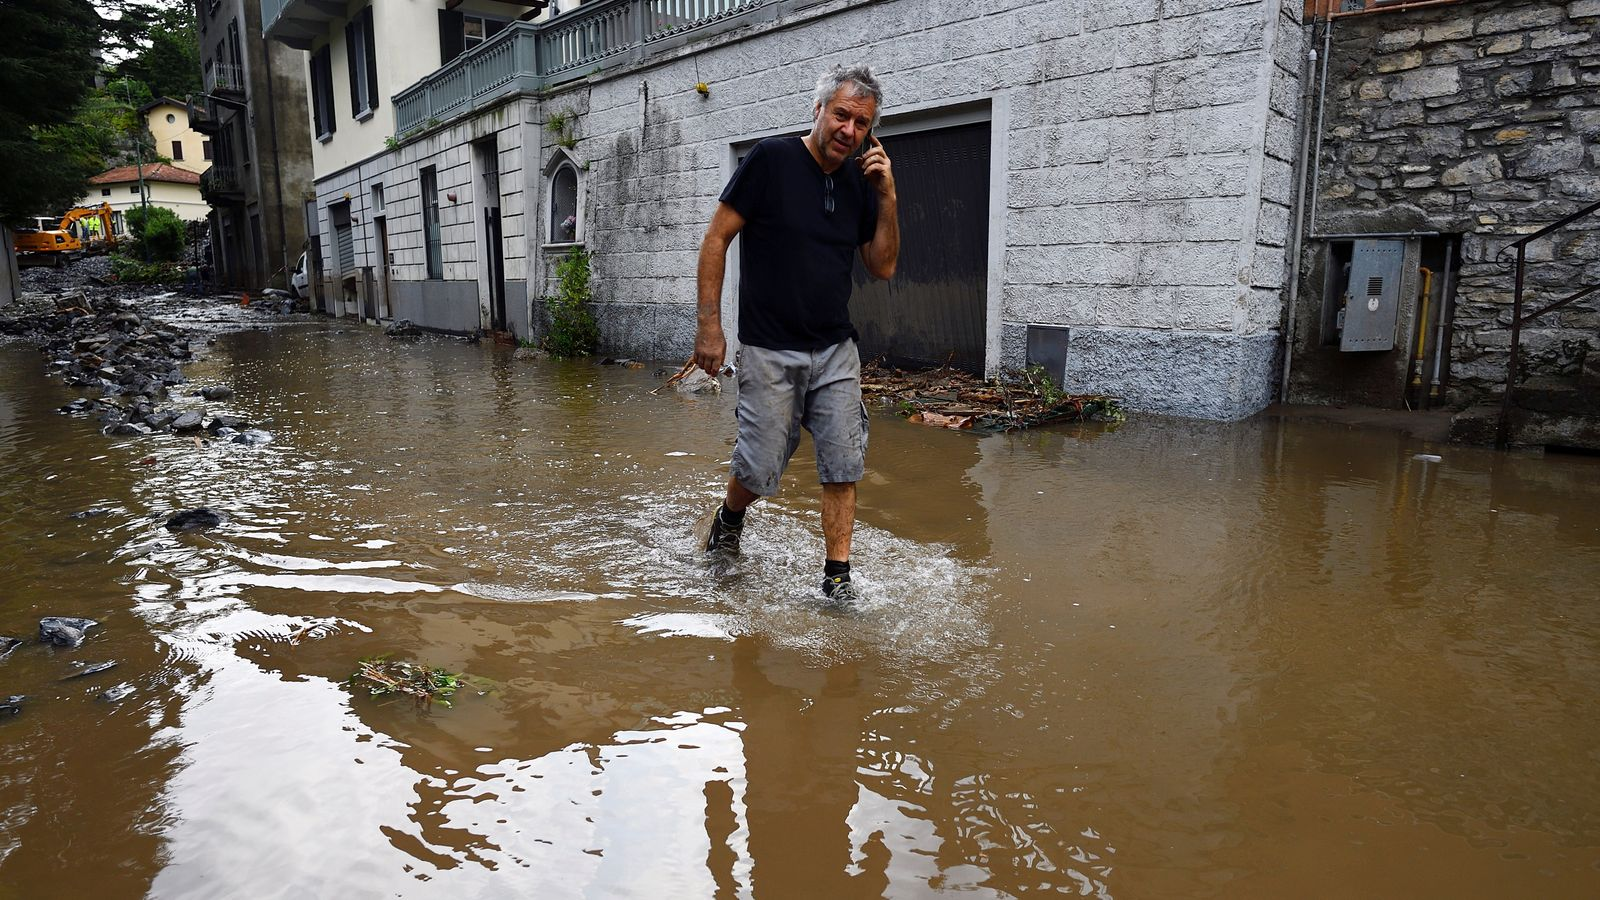 Italy flooding: Dozens rescued after towns around popular tourist spot Lake Como hit by landslides and heavy rain